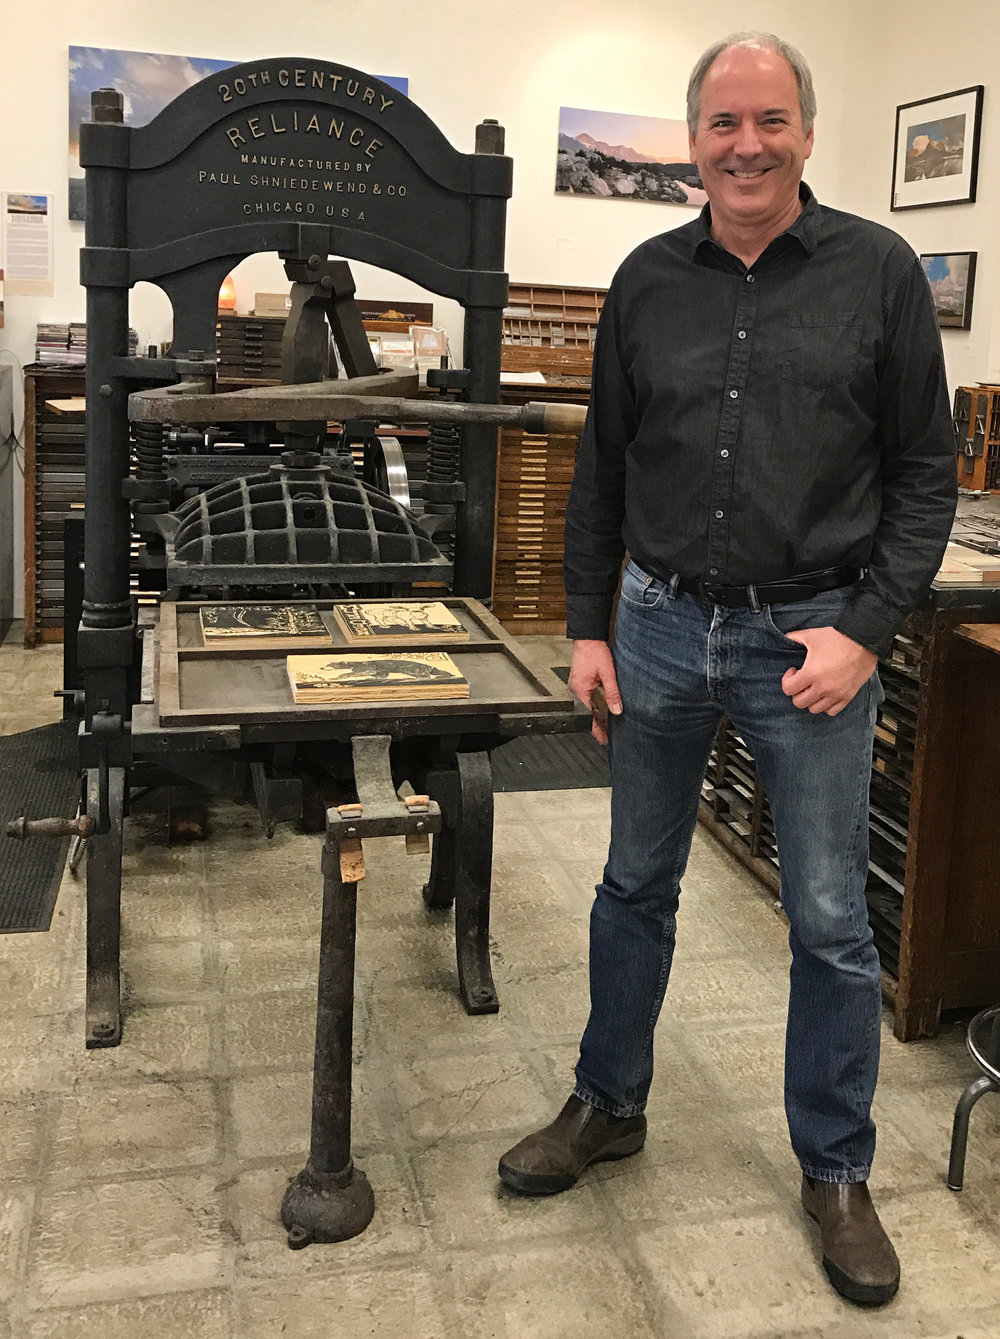 Bruce Licher with the Reliance proofing press 2, photo by Marcy Watton.jpg